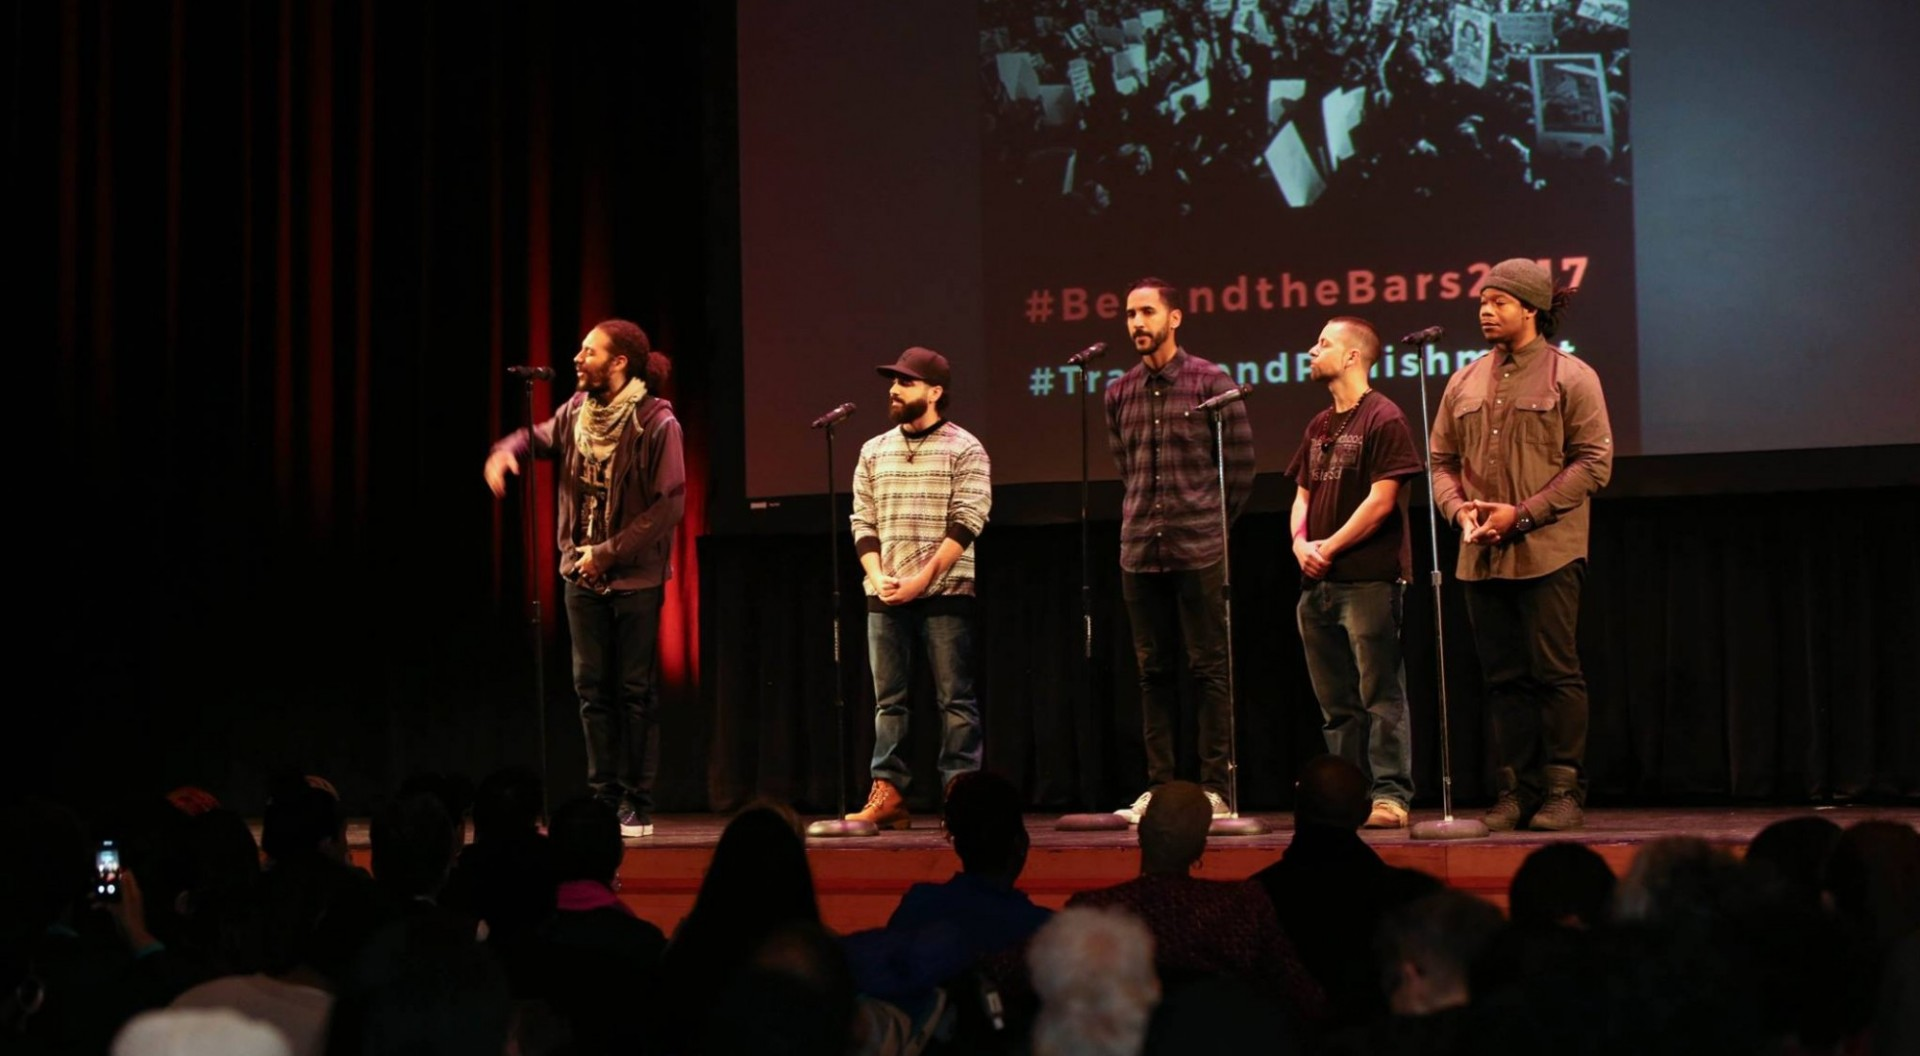 Justice Poets performing at Beyond the Bars Conference